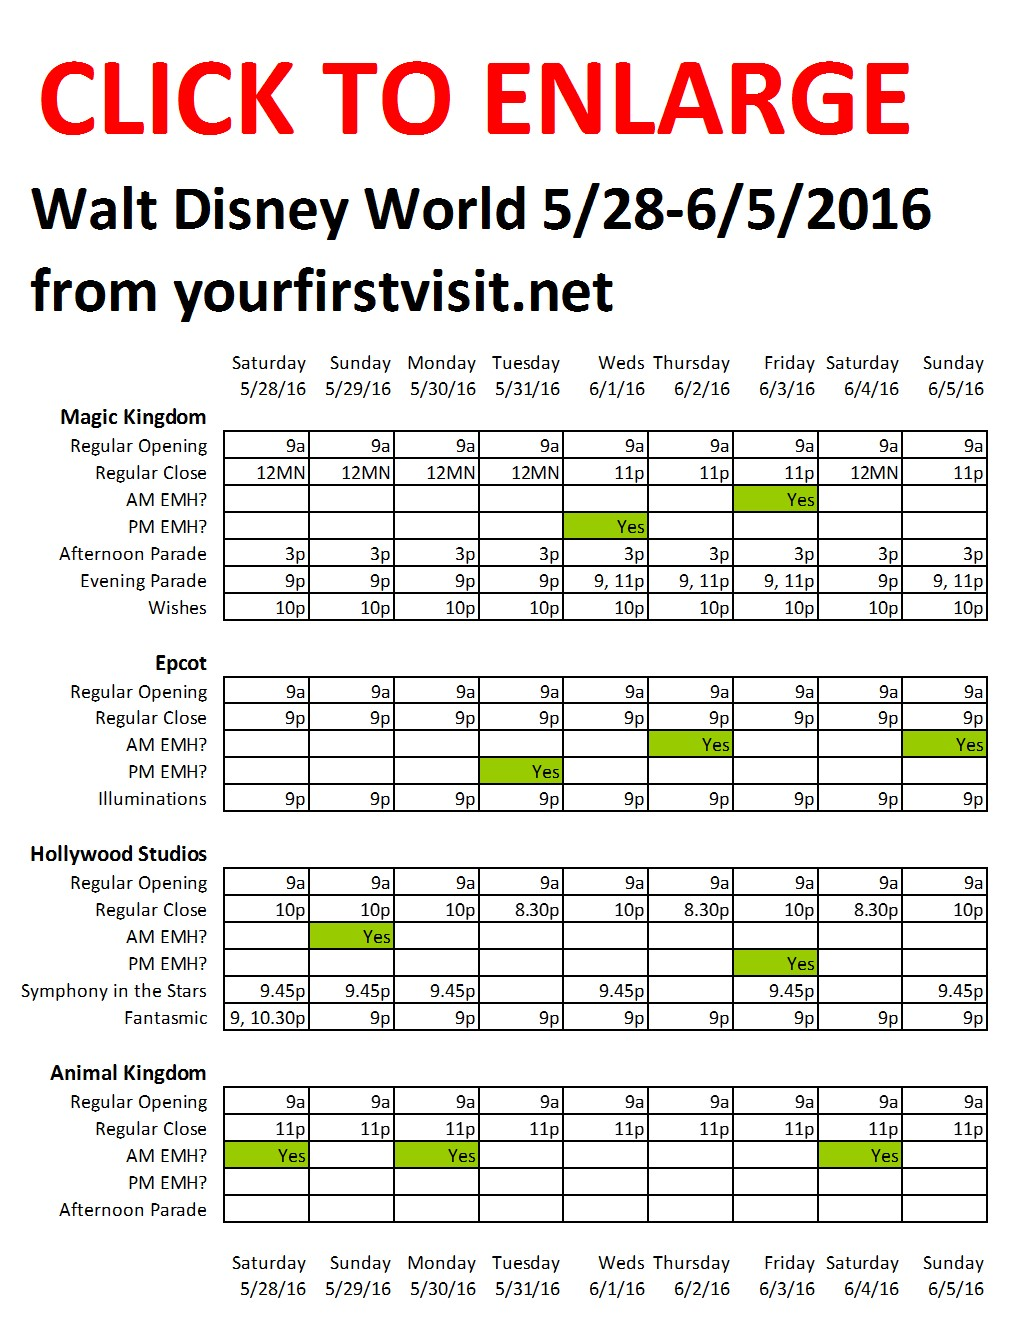 Disney World 5-28 to 6-5-2016 from yourfirstvisit.net